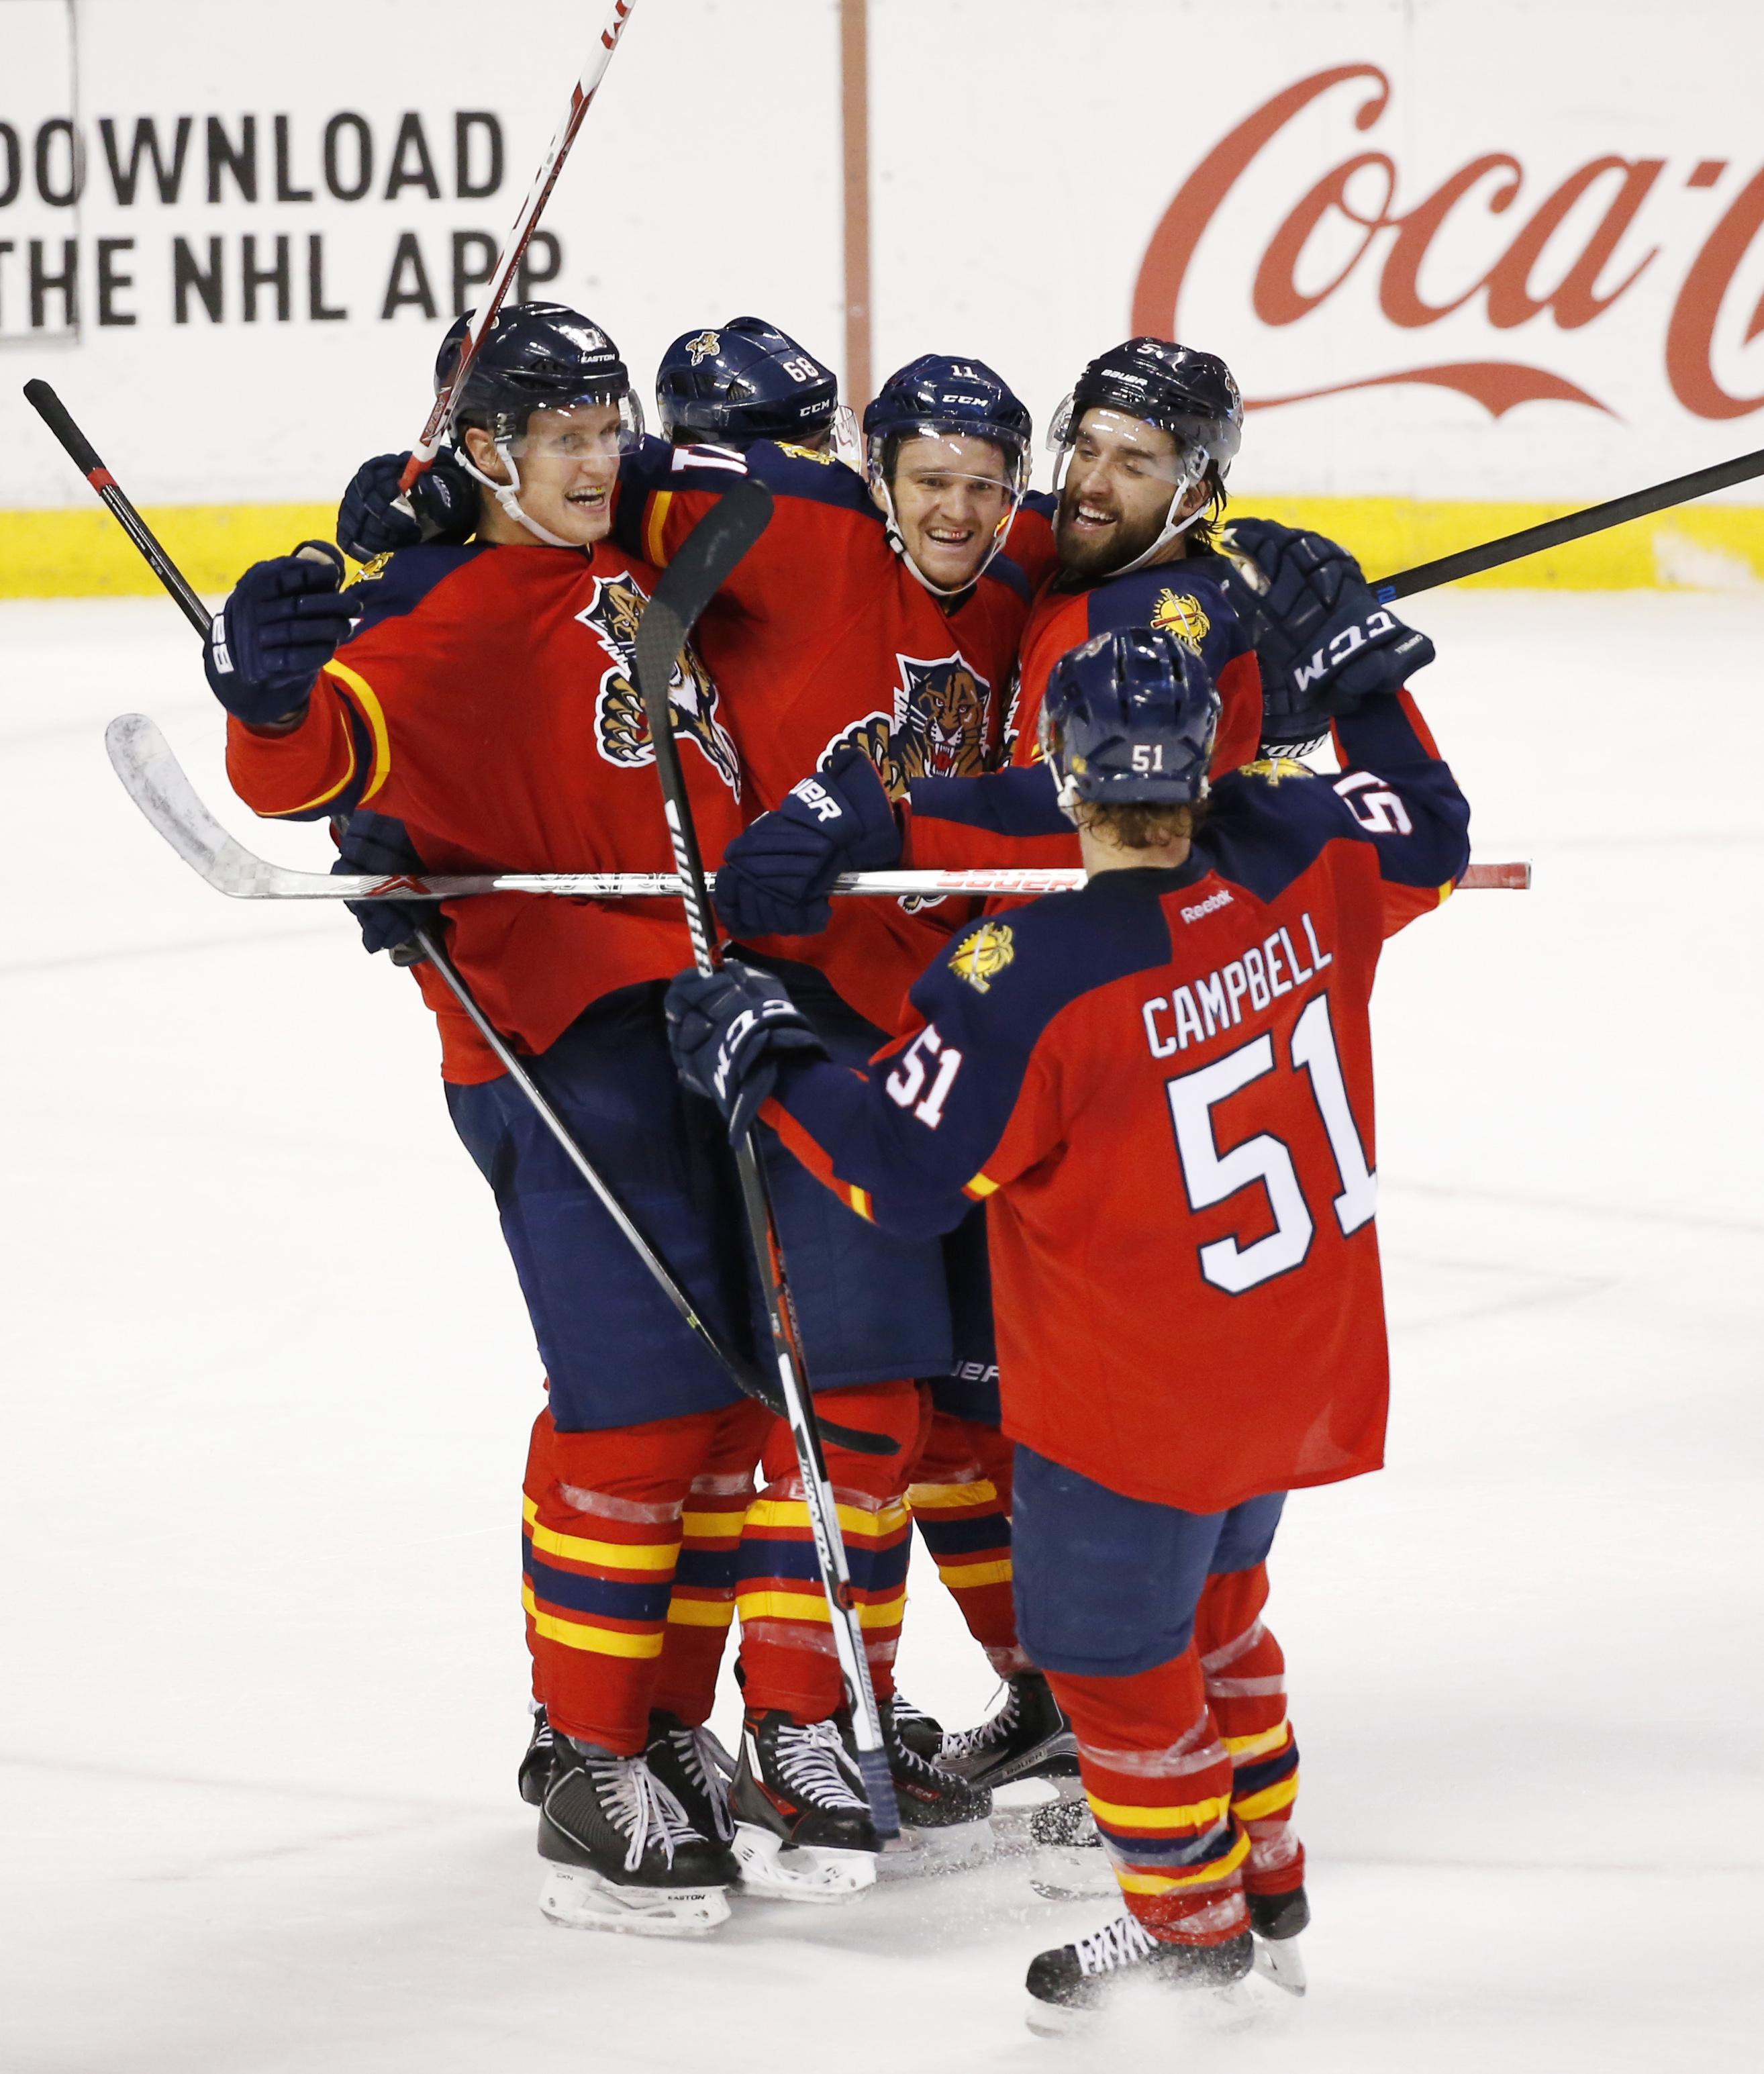 Florida Panthers players celebrate after center Nick Bjugstad, far left, scored a goal during the third period of an NHL hockey game against the Tampa Bay Lightning, Monday, Nov. 16, 2015 in Sunrise, Fla. The Panthers won 1-0. (AP Photo/Wilfredo Lee)